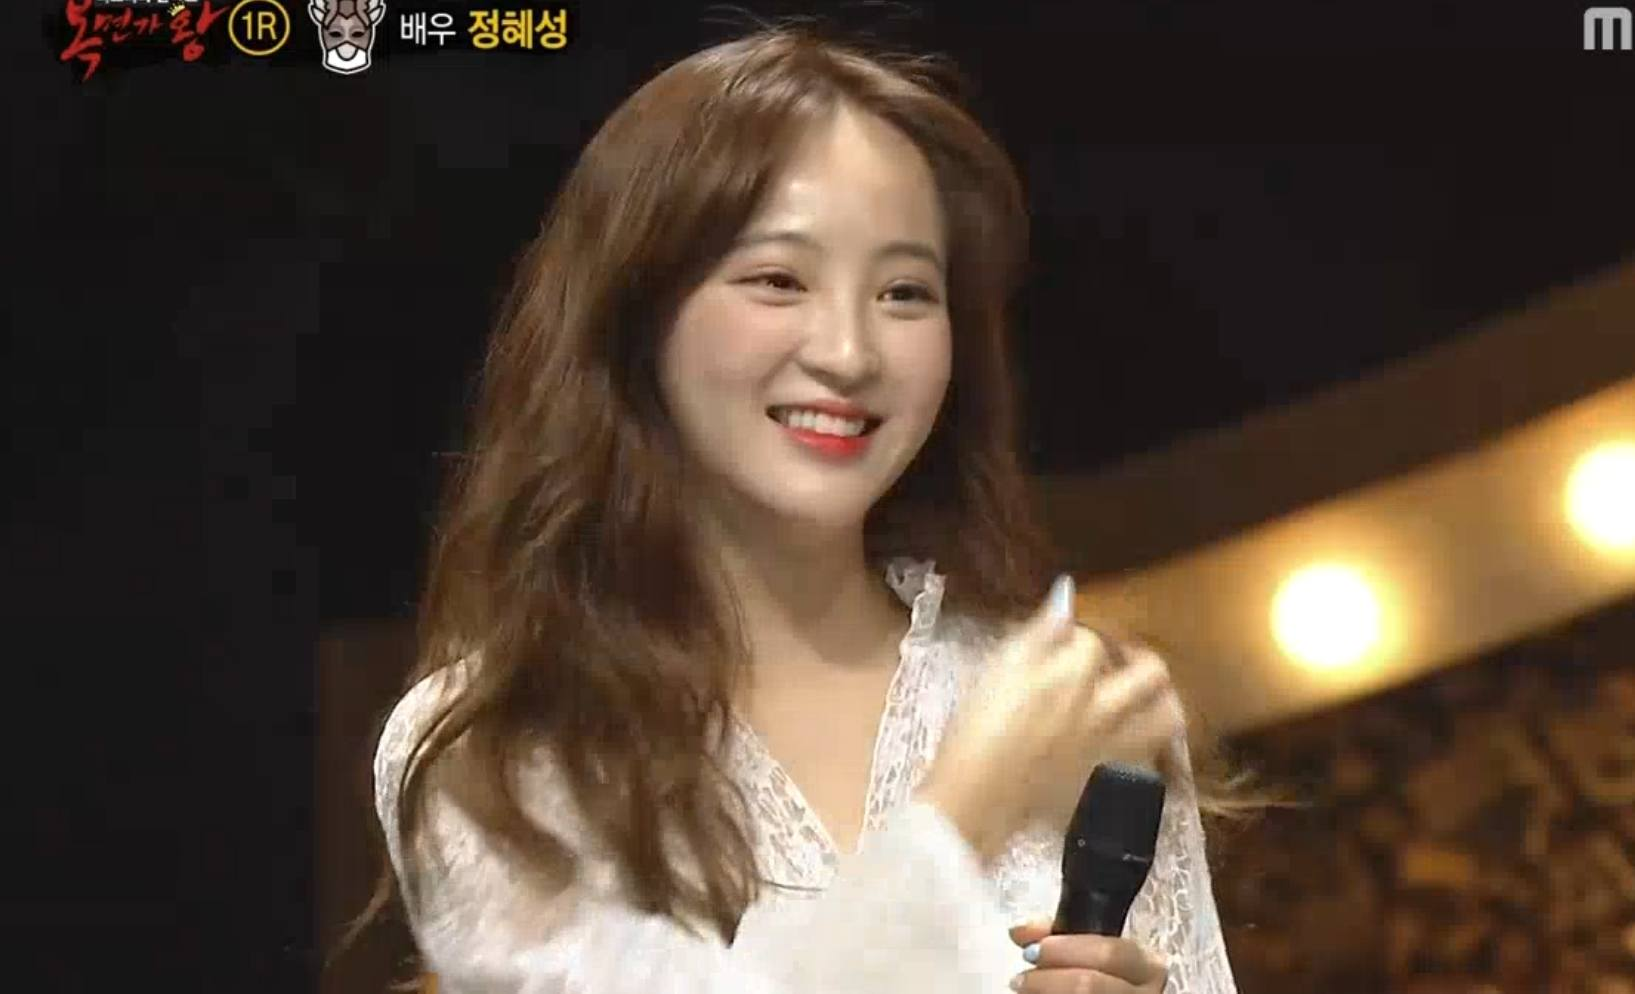 Jung Hye Sung Reveals Her Past Trauma And How She Conquered It